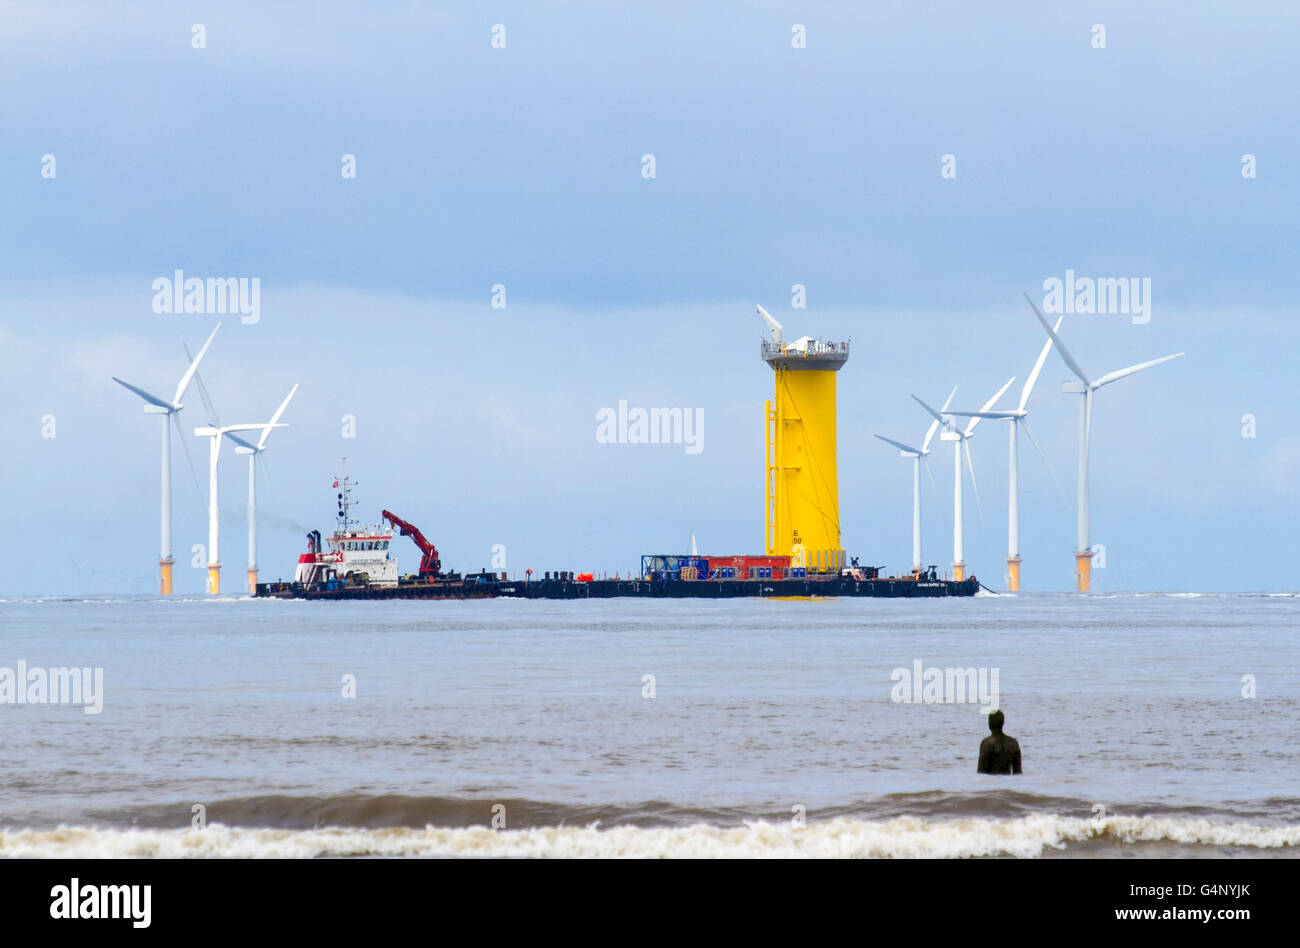 Shipping leaving the River Mersey, crossing the Burbo Windfarm, at Crosby, Merseyside, UK. Cammell Laird Wind Farm - Stock Image